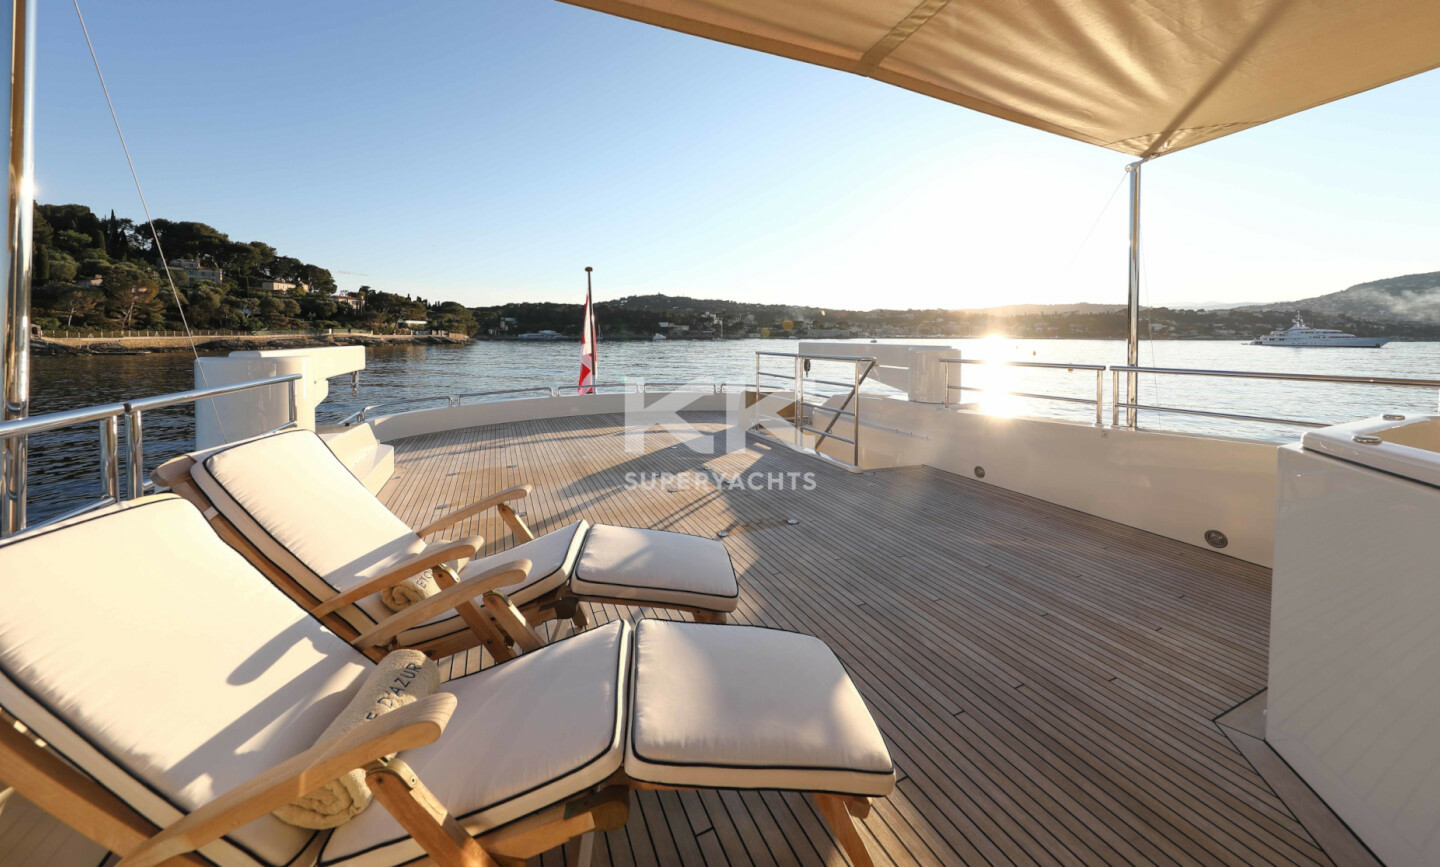 Etoile D'azur yacht for Charter 7